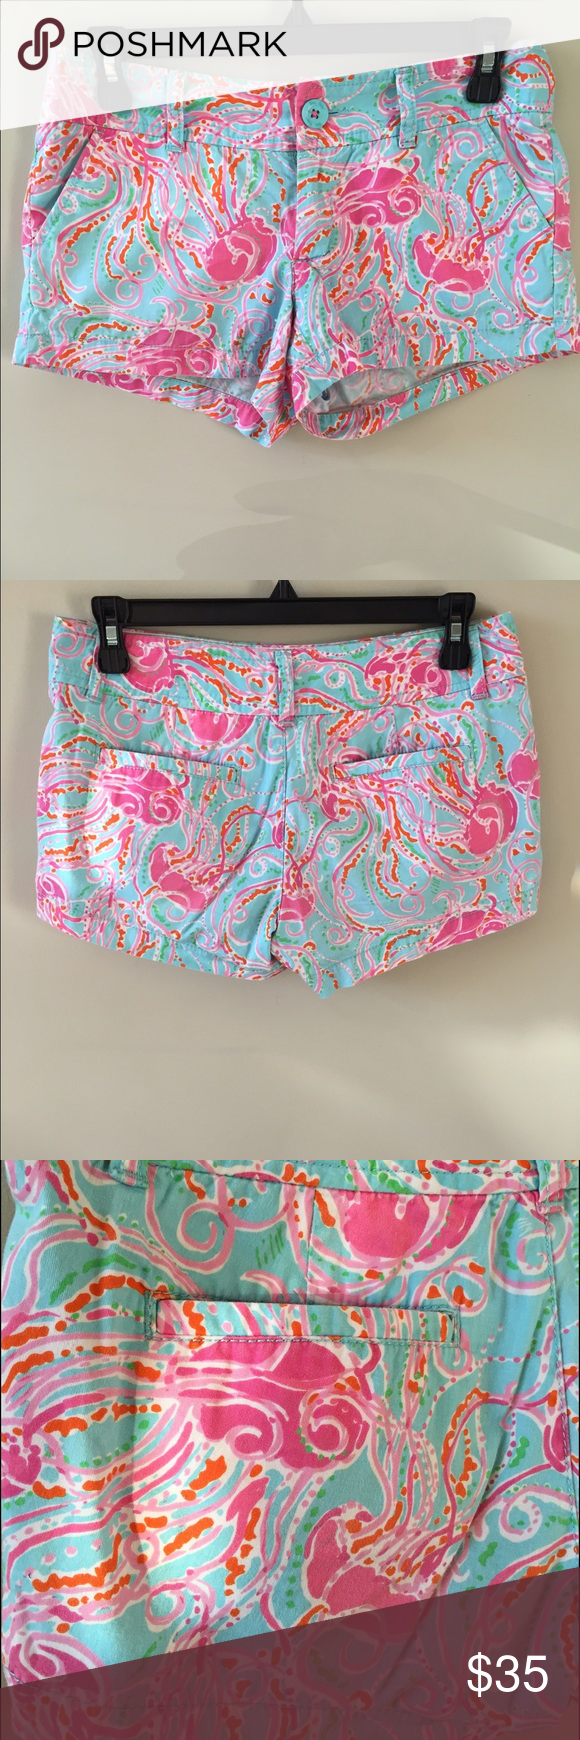 "Lilly Pulitzer 3"" Walsh short 100% cotton. Durable and comfortable short with jellyfish underwater pattern. Great condition Lilly Pulitzer Shorts"